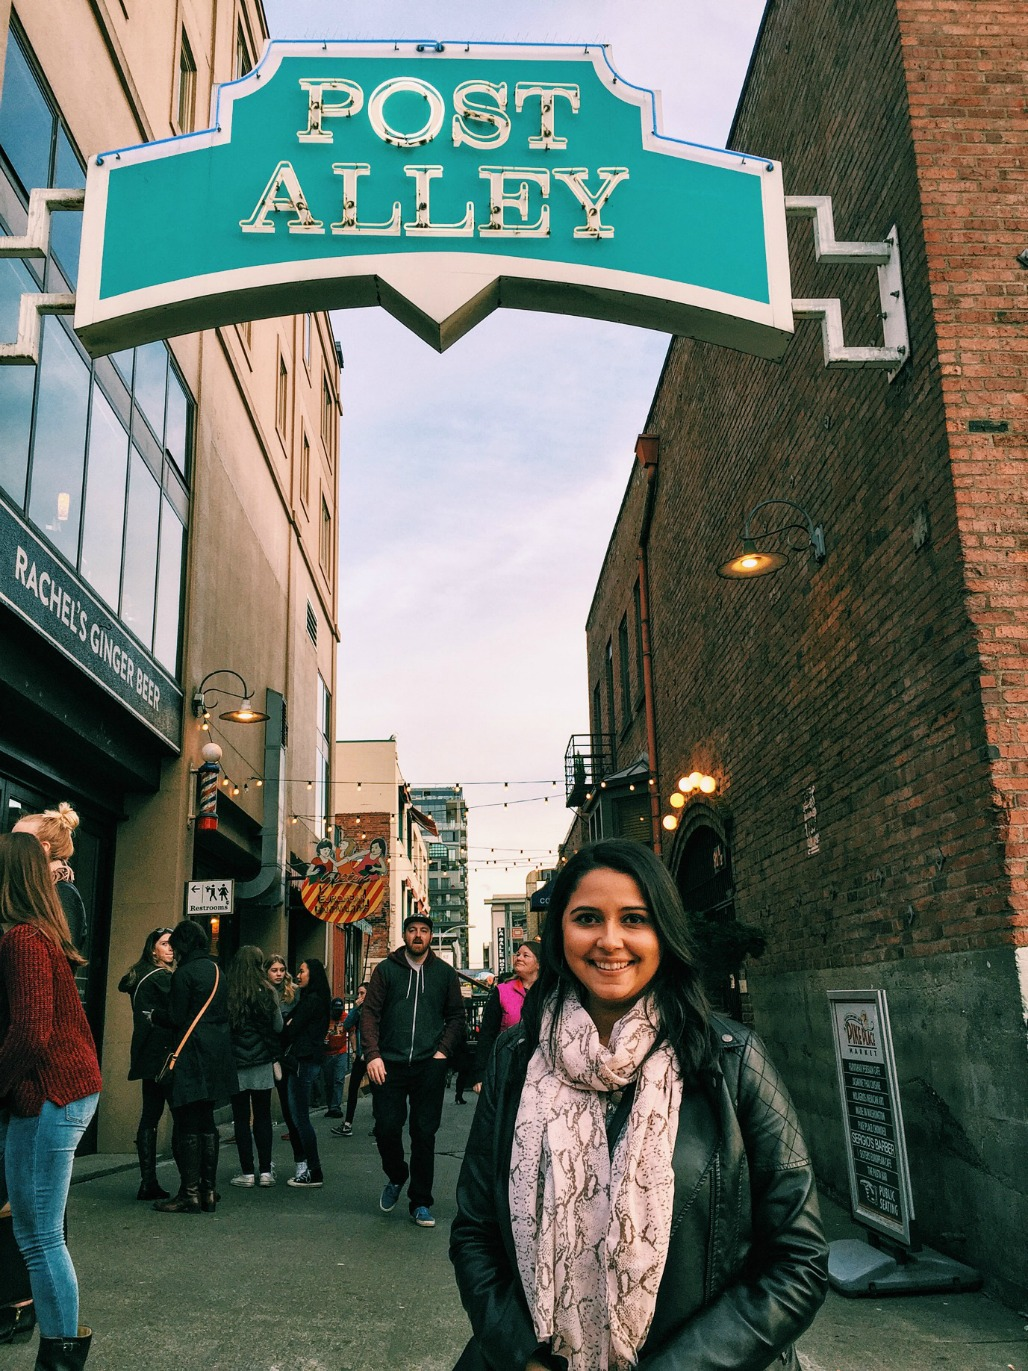 Post Alley. Seattle, WA by AS Blog